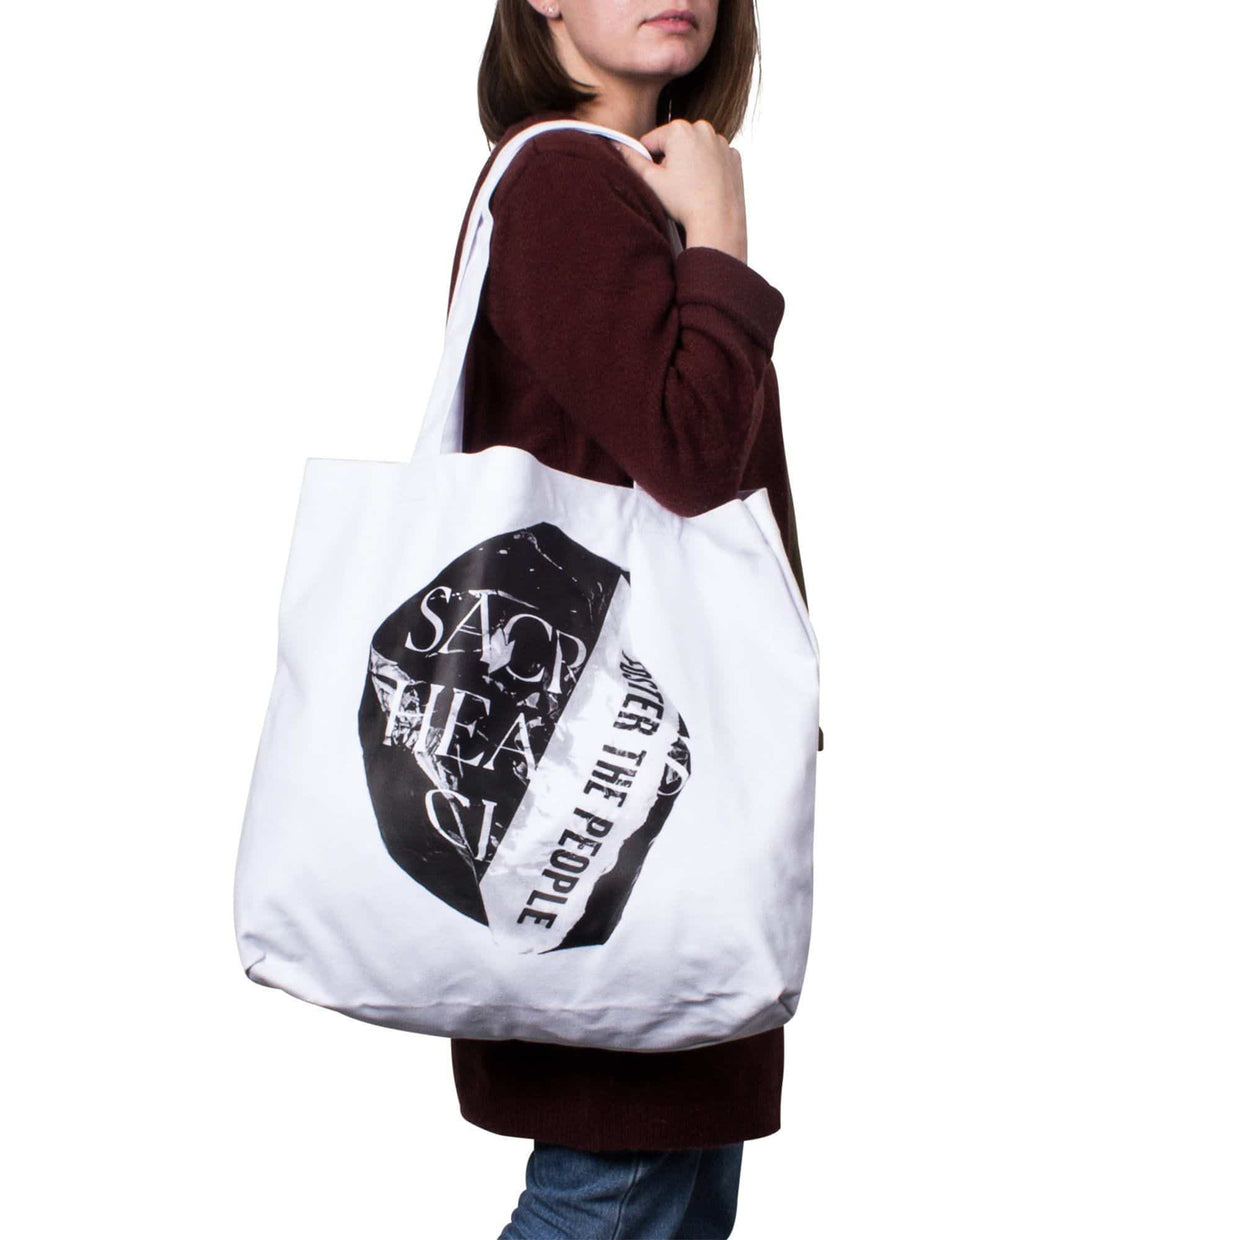 SHC Oversized Tote Bag